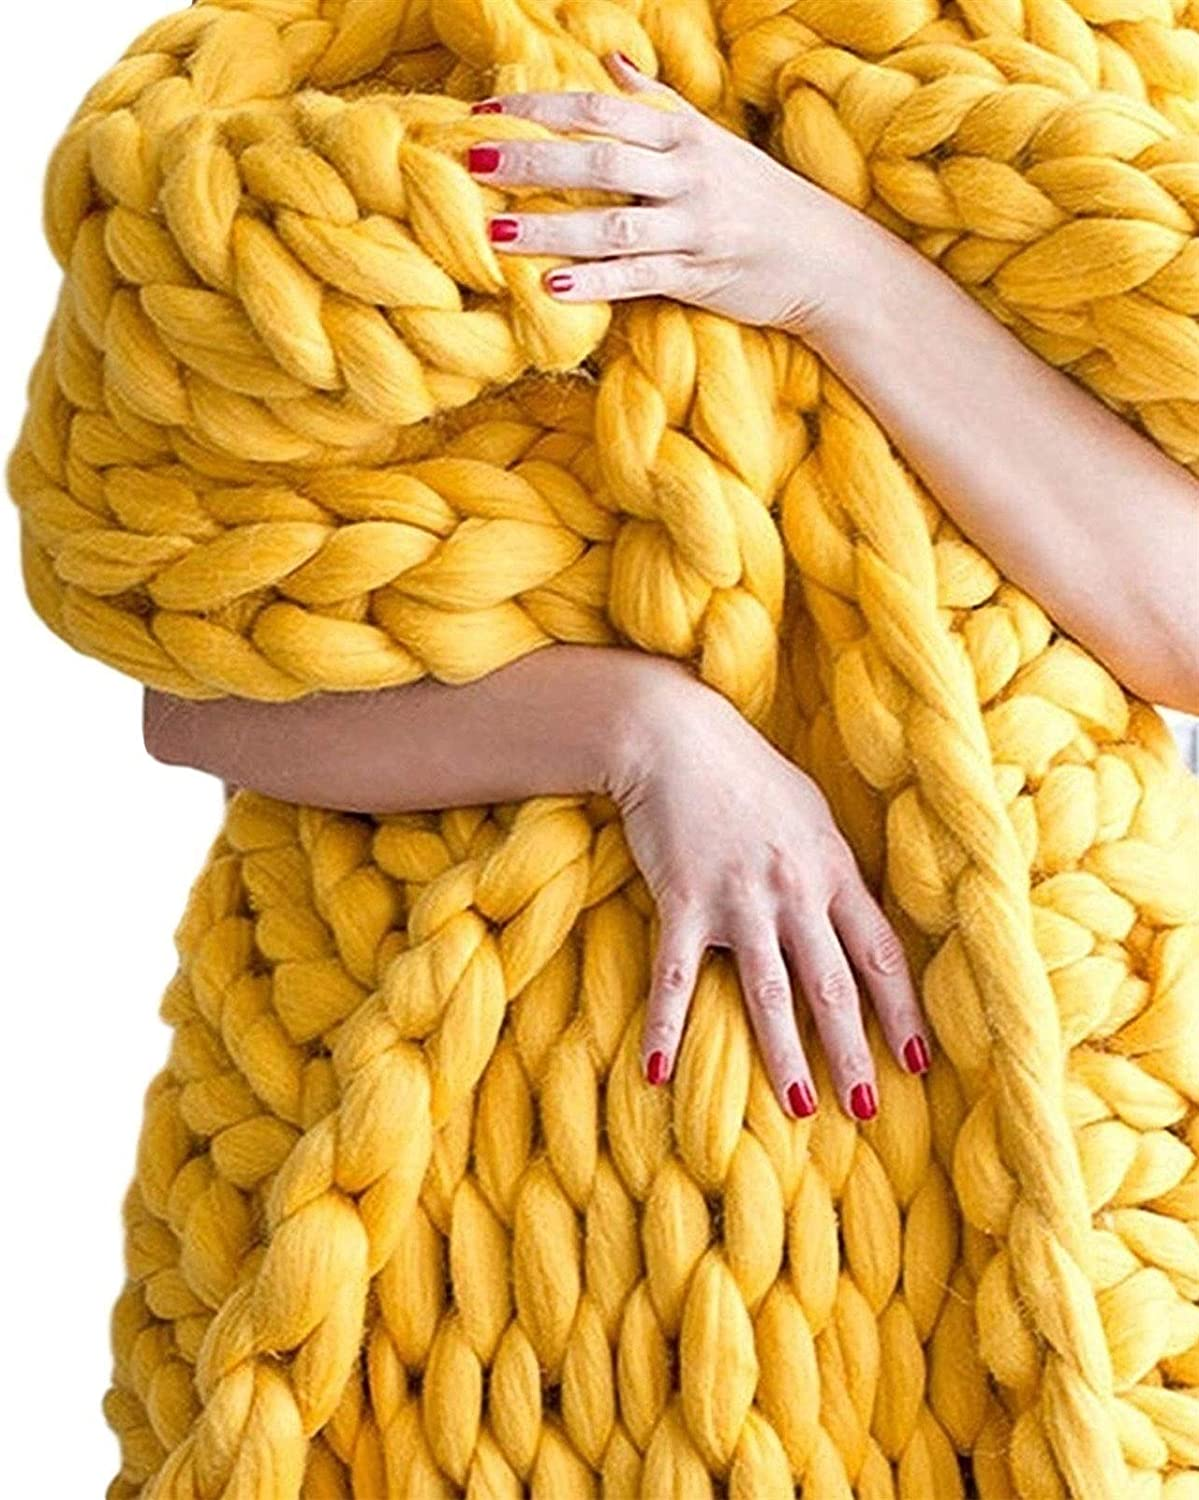 YXYH Challenge the lowest price of Japan Chunky Knit Blanket Soft Thick Max 69% OFF Hand Yarn Polyester